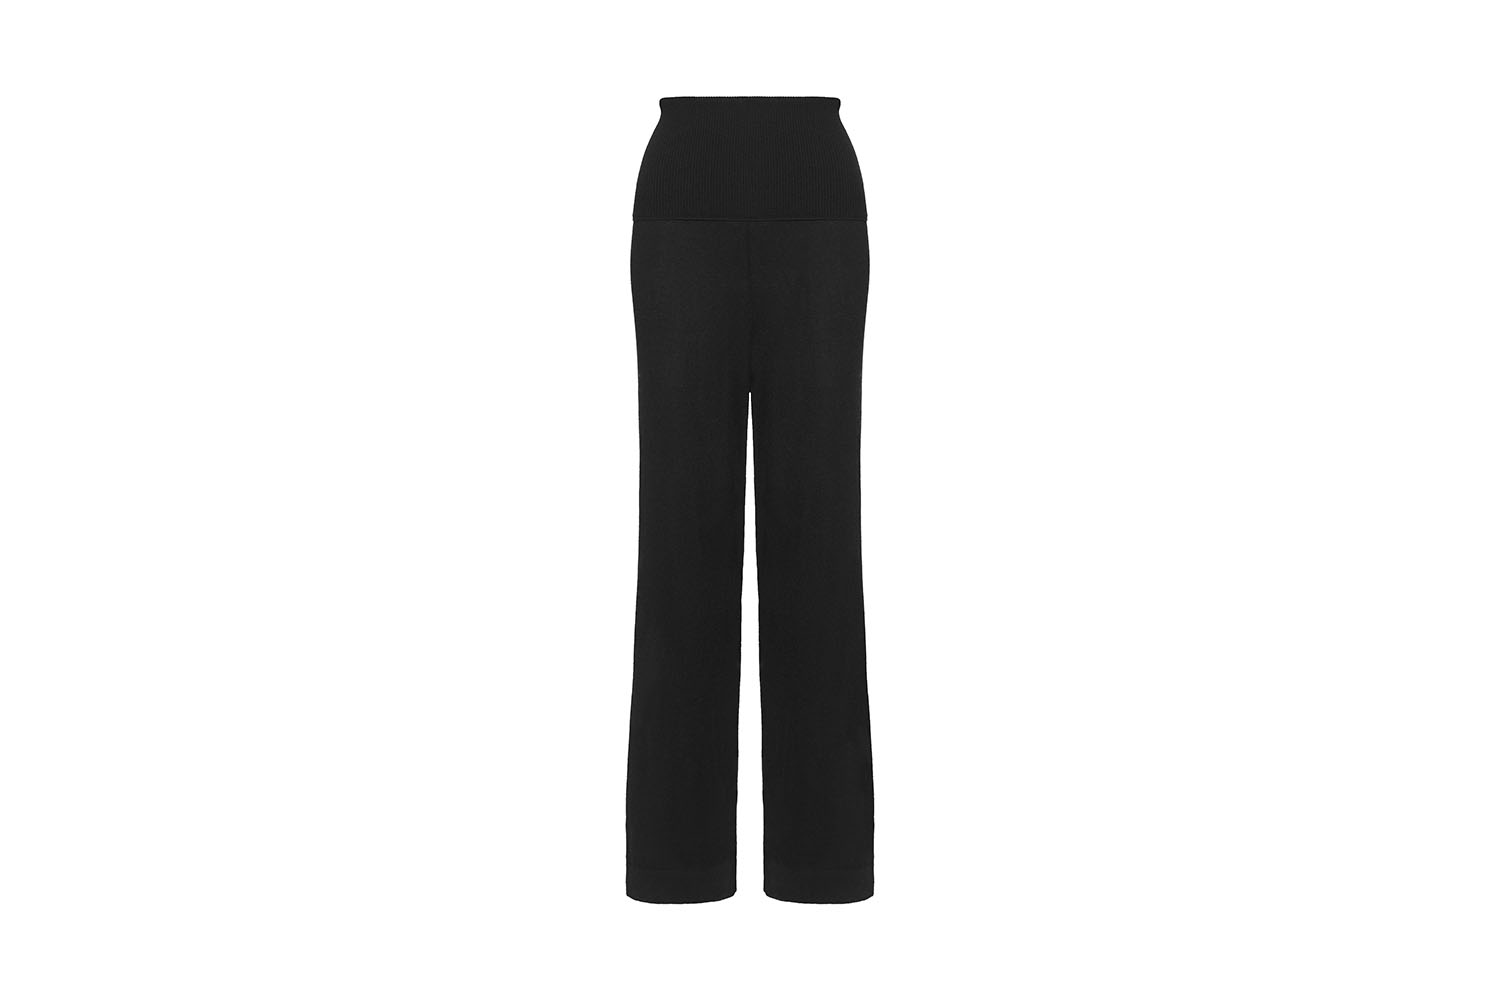 Feuilleton Trousers standard view 4